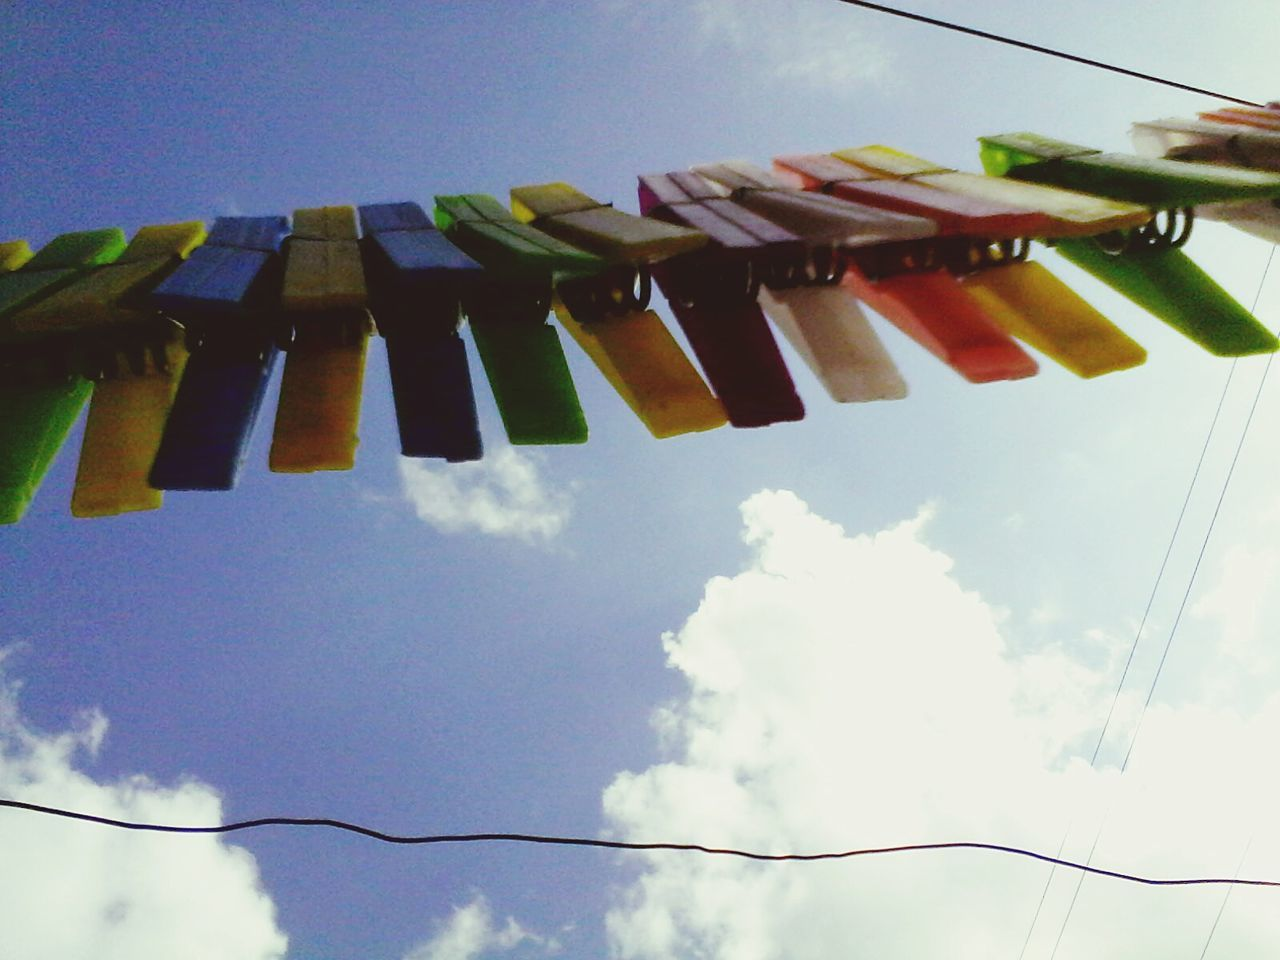 hanging, sky, low angle view, variation, no people, multi colored, large group of objects, outdoors, cloud - sky, day, close-up